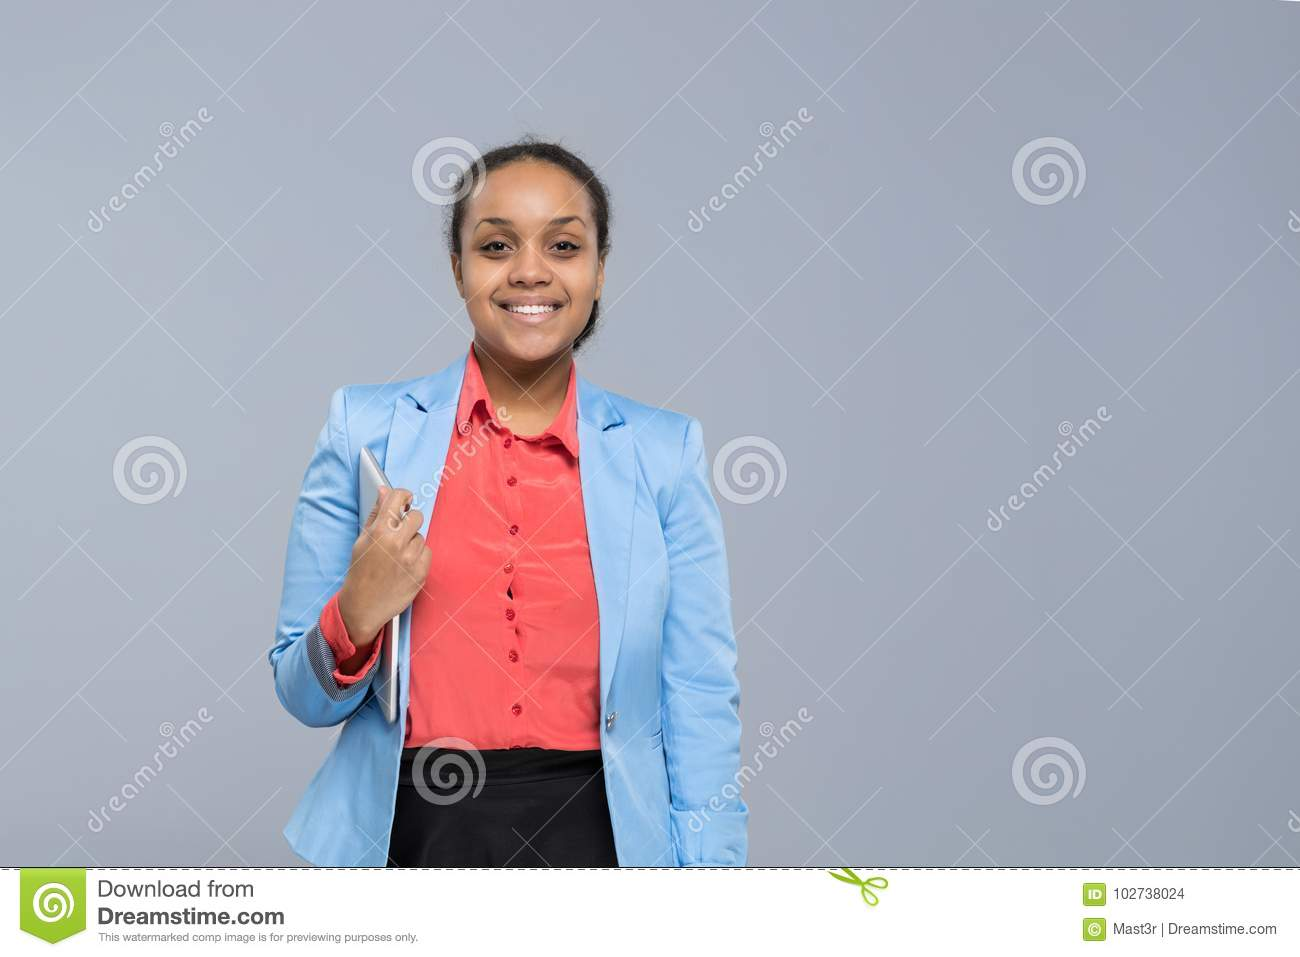 Download Young Business Woman Hold Tablet Computer African American Girl Happy Smile Businesswoman Stock Photo - Image of network, application: 102738024